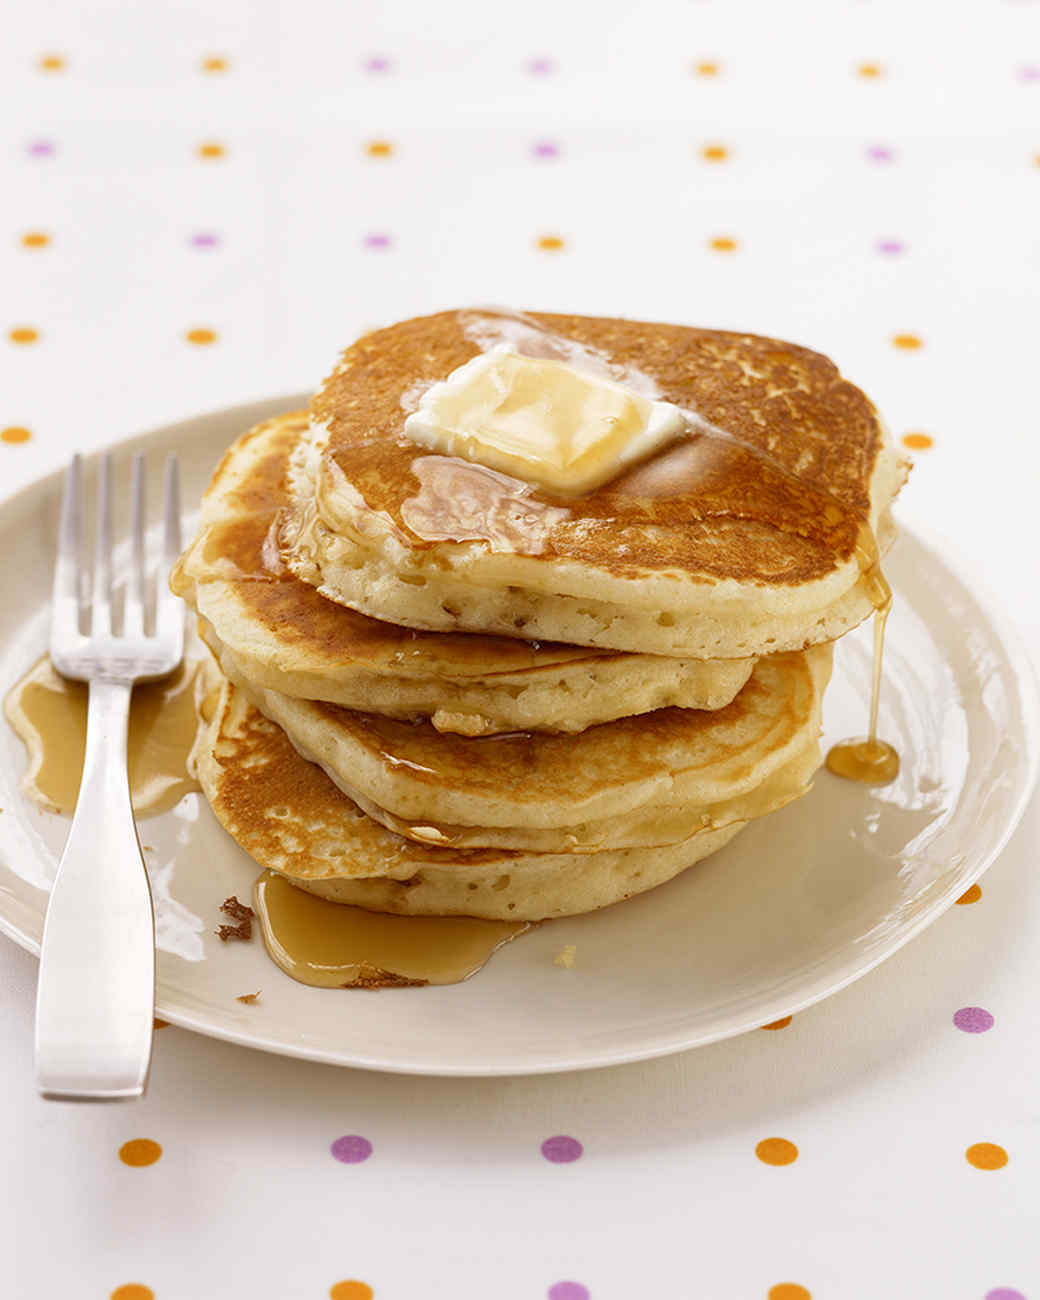 Cooking American pancakes (photos and video)